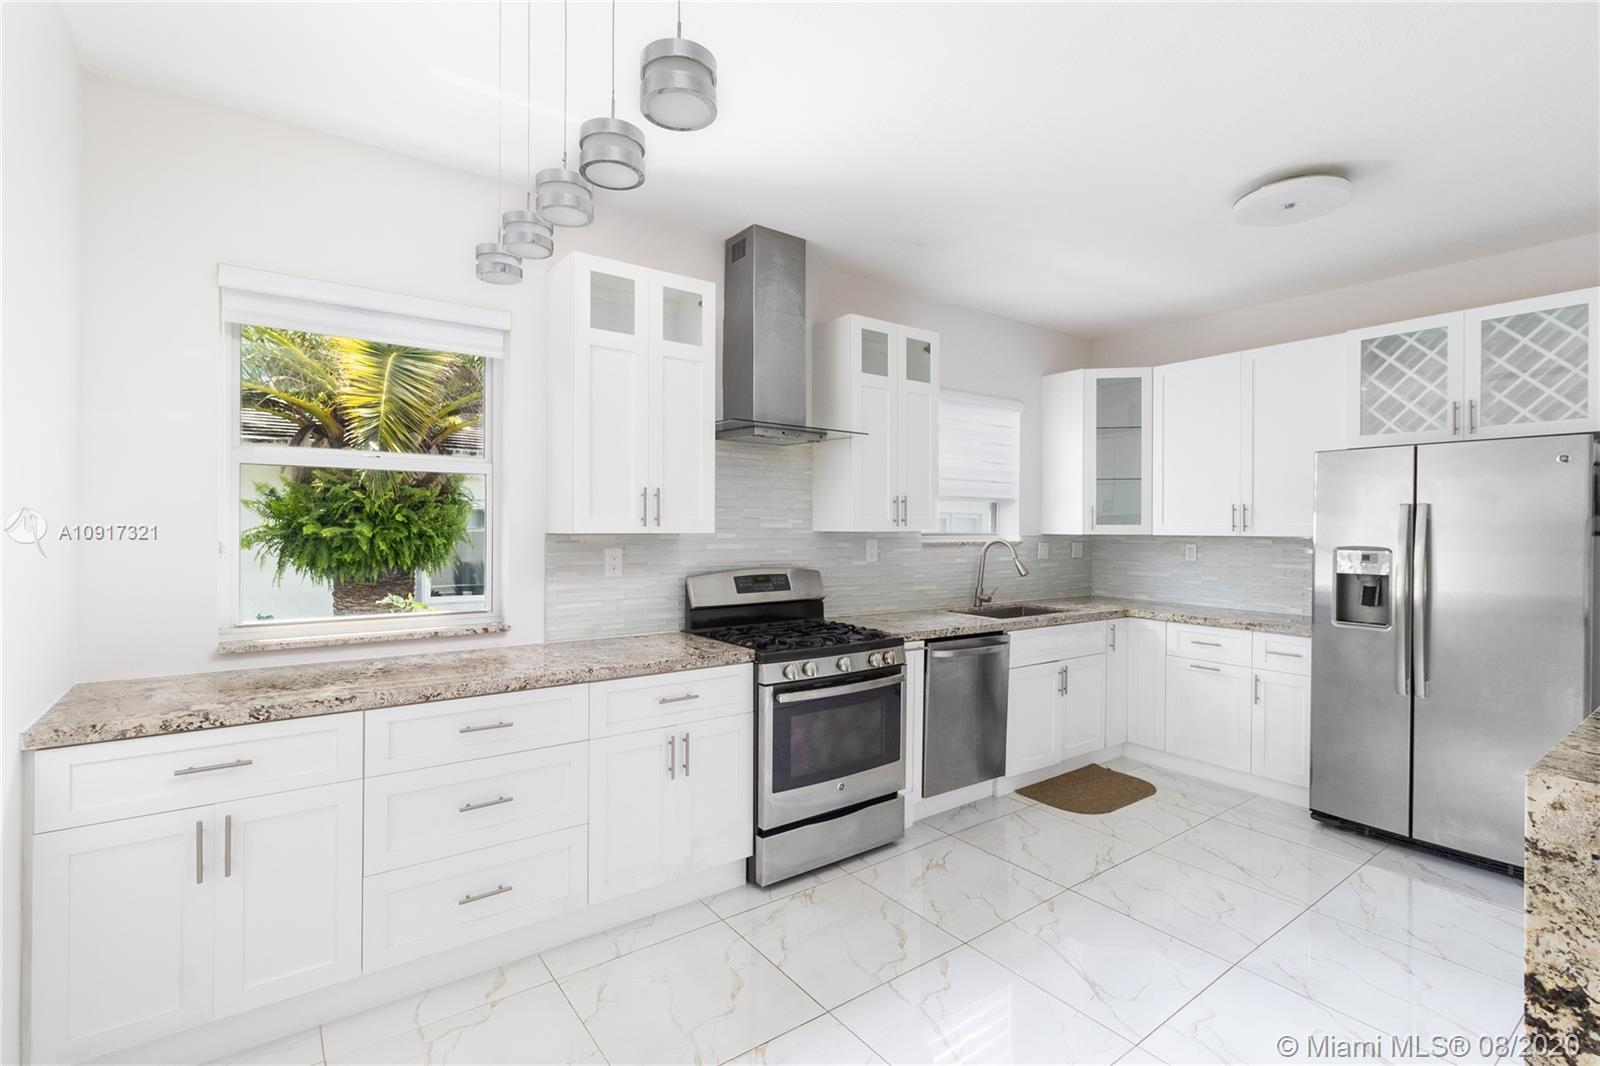 1326 15th St Unit 3, Miami Beach, Florida 33139